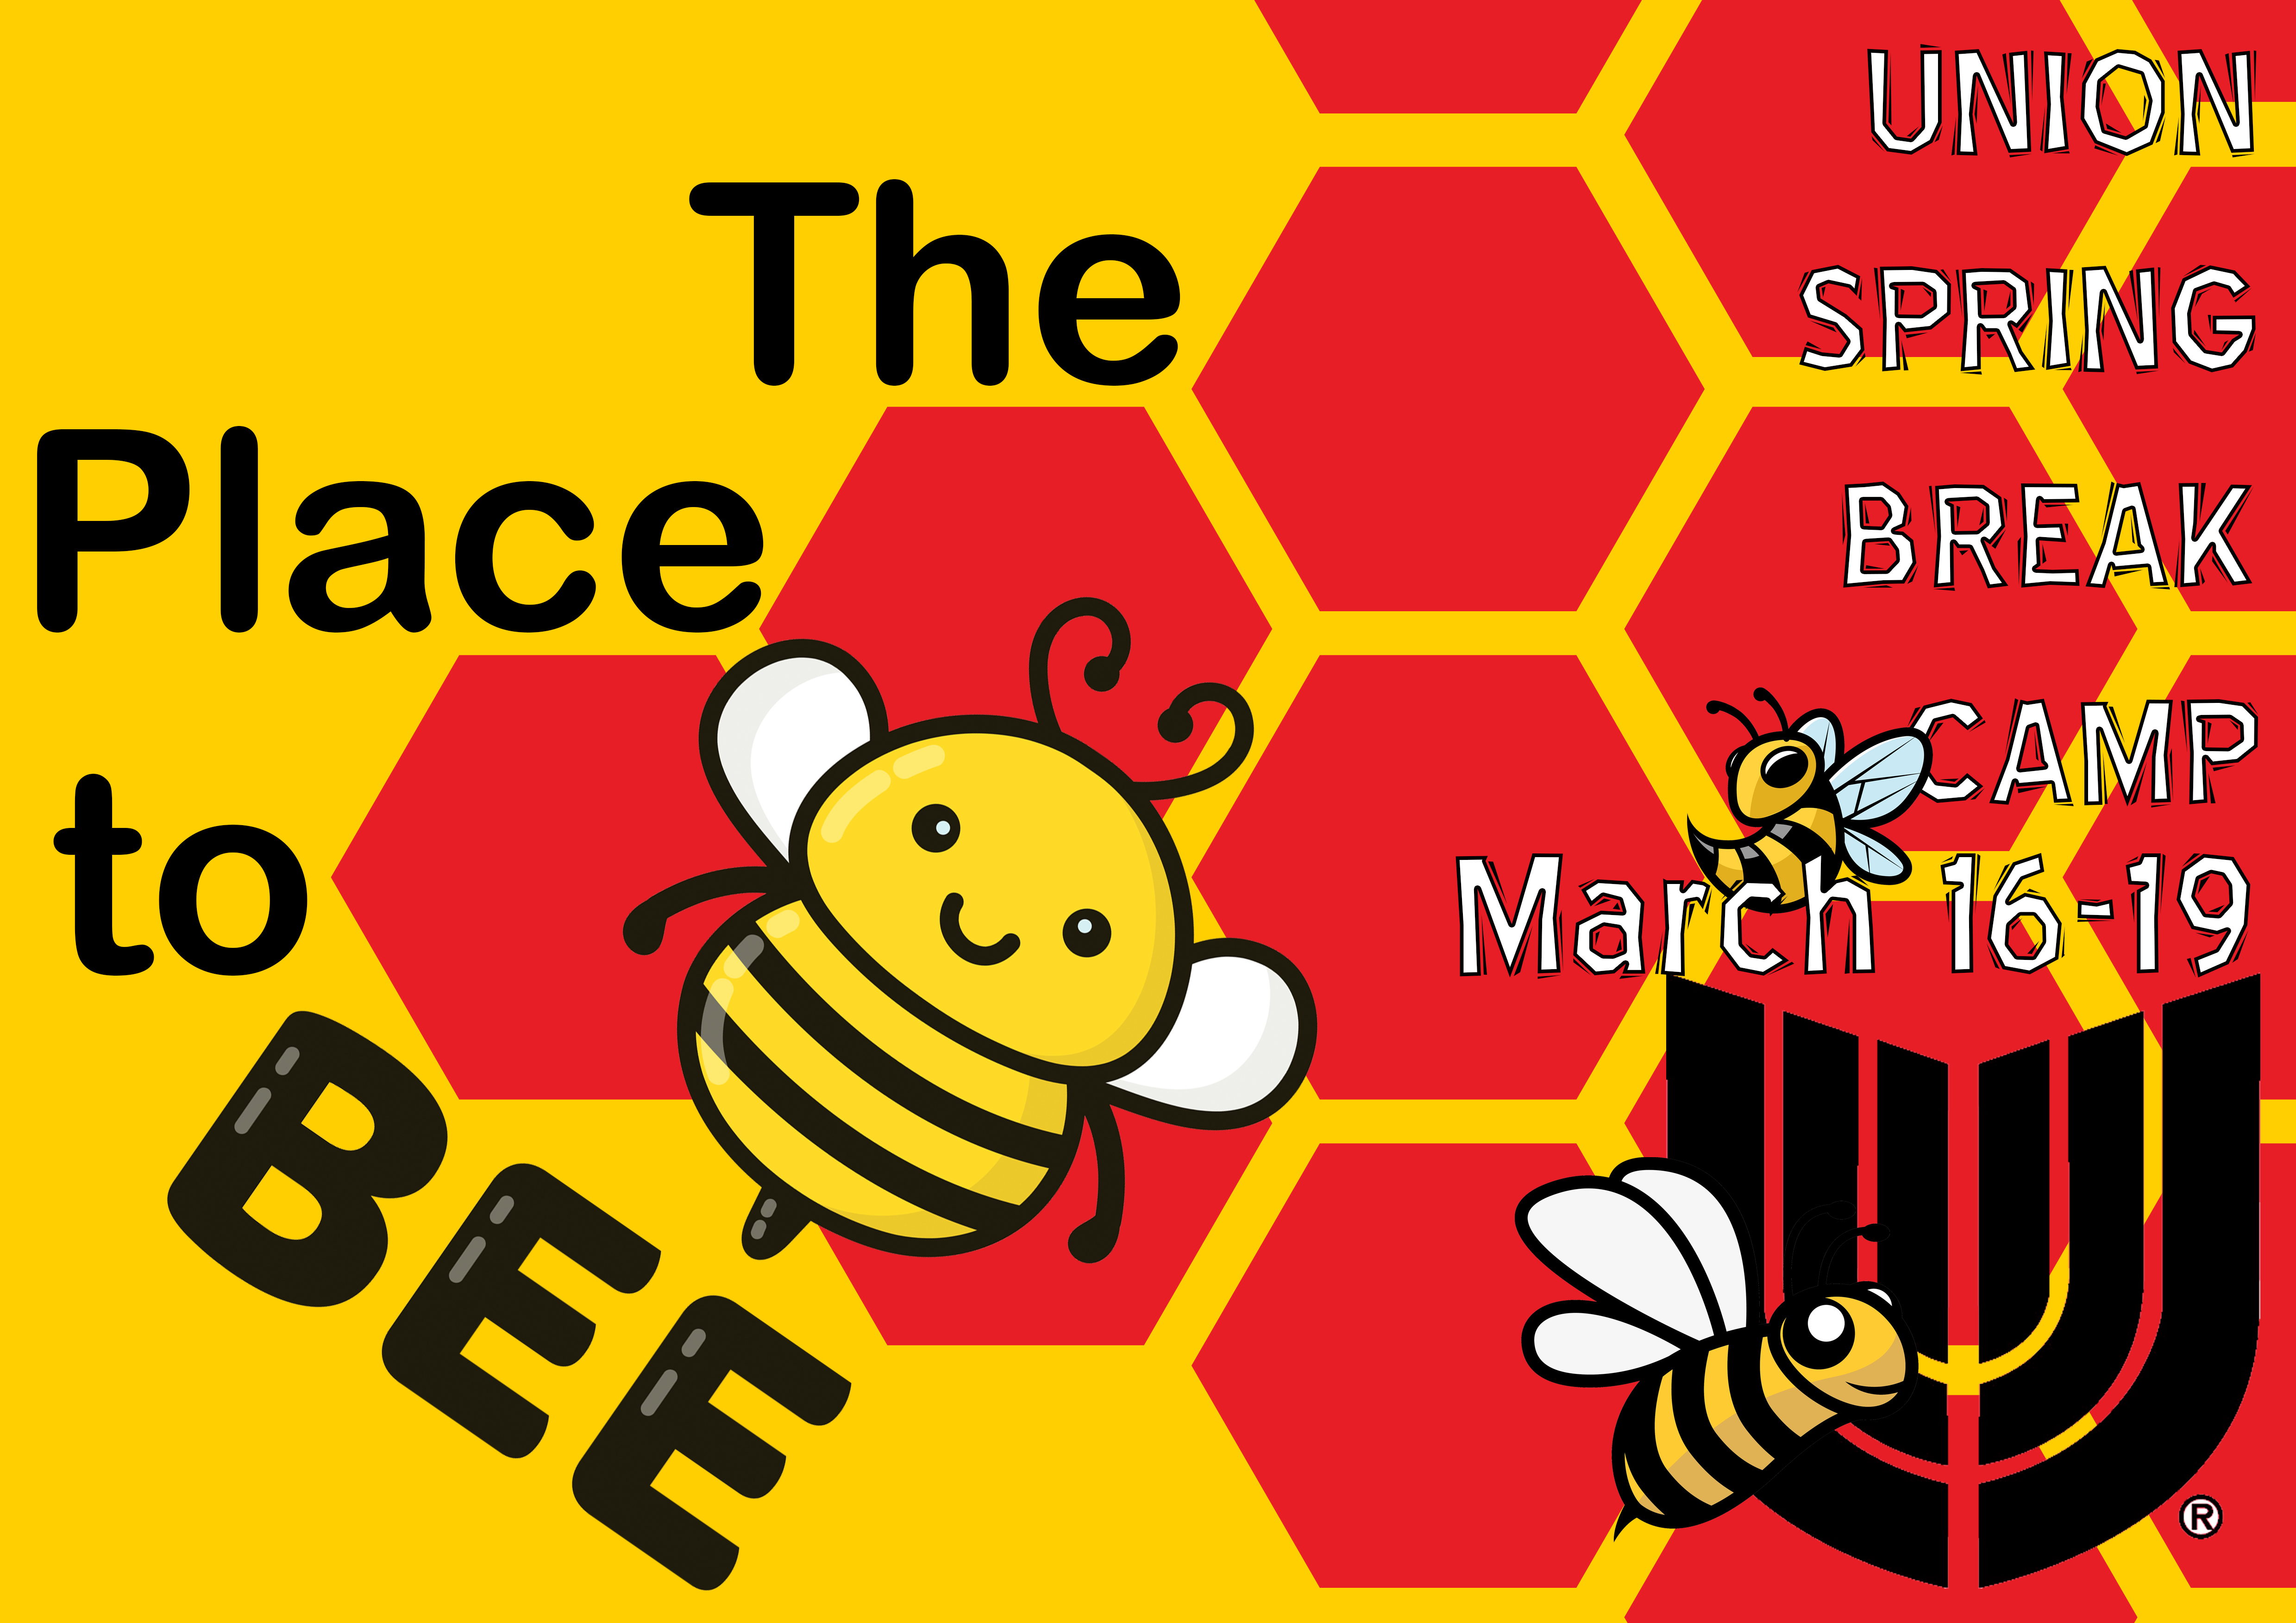 "The Union Extended Day Program Spring Break Camp will be March 16-19 at Jefferson Elementary School, 8418 S. 107th E. Ave. This year's theme is ""The Place to Bee."" Union will accept enrollment for spring break camp until 5 p.m. Thursday, March 5."